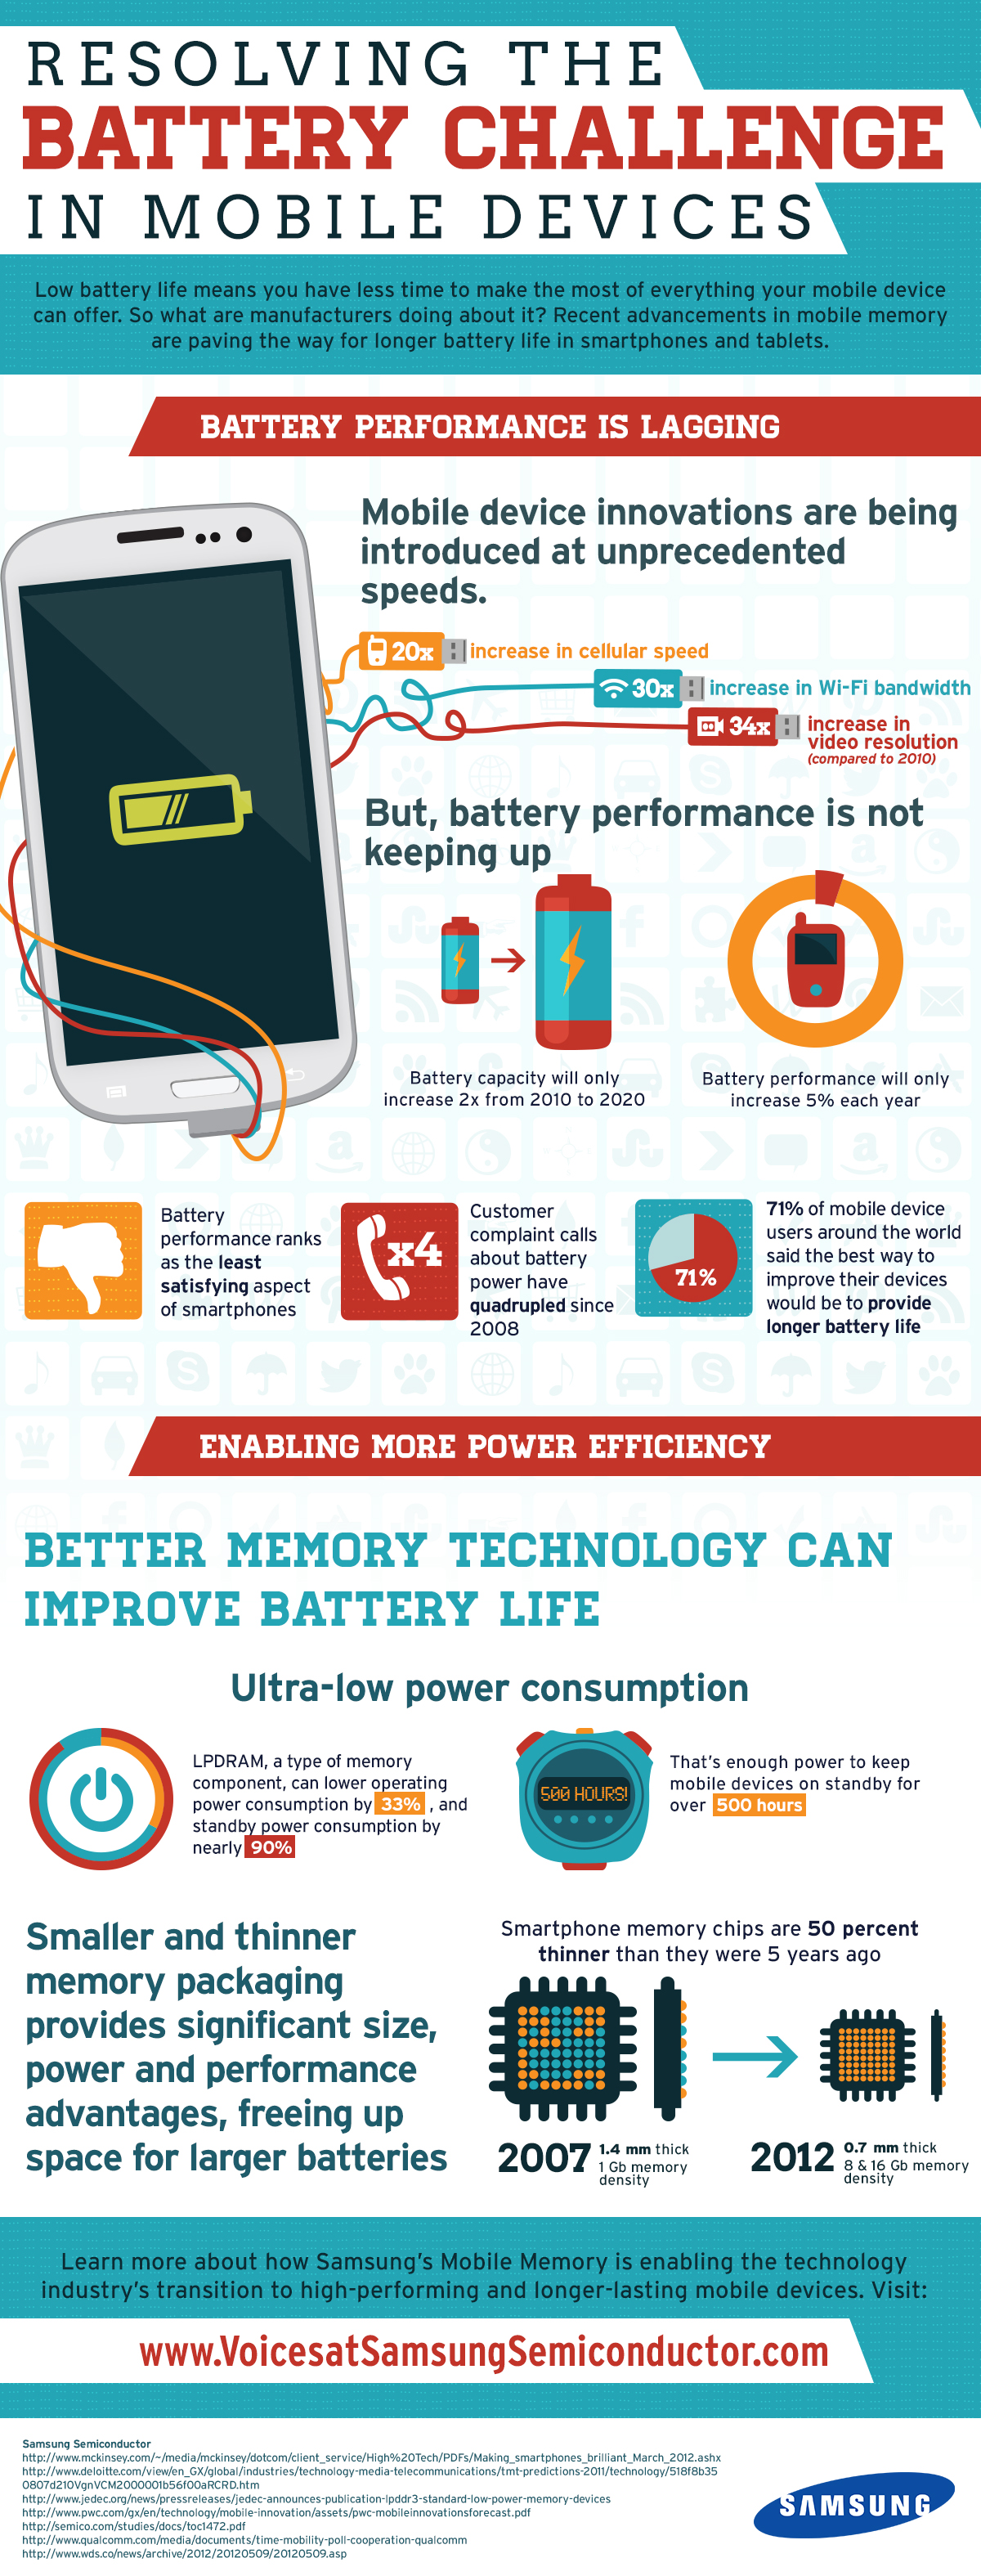 Resolving the Battery Challenge in Mobile Devices